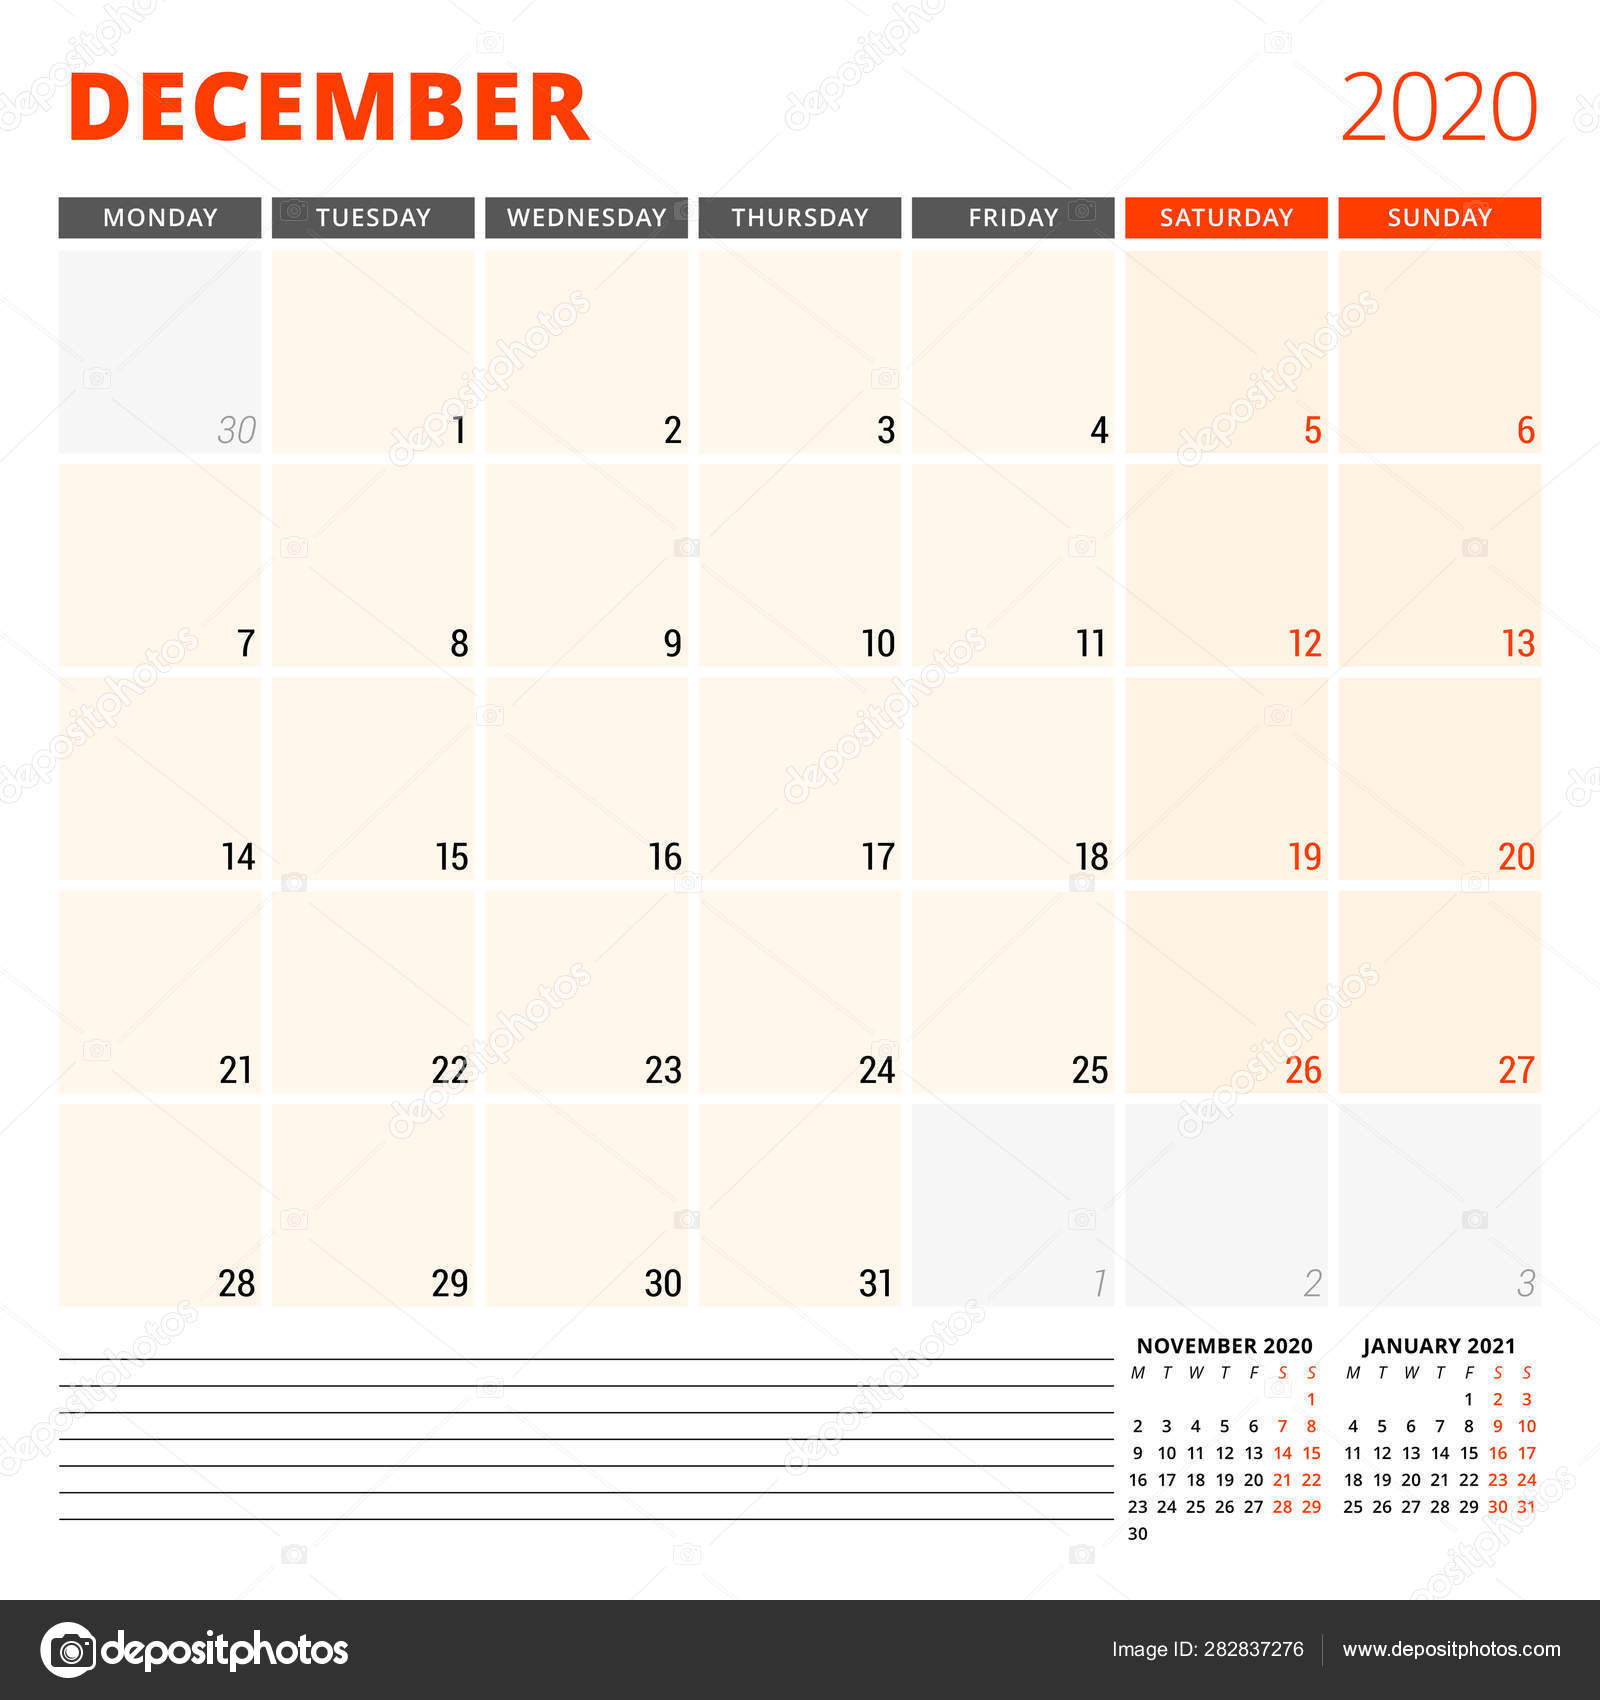 Calendar December 2020.Calendar Planner For December 2020 Stationery Design Template Week